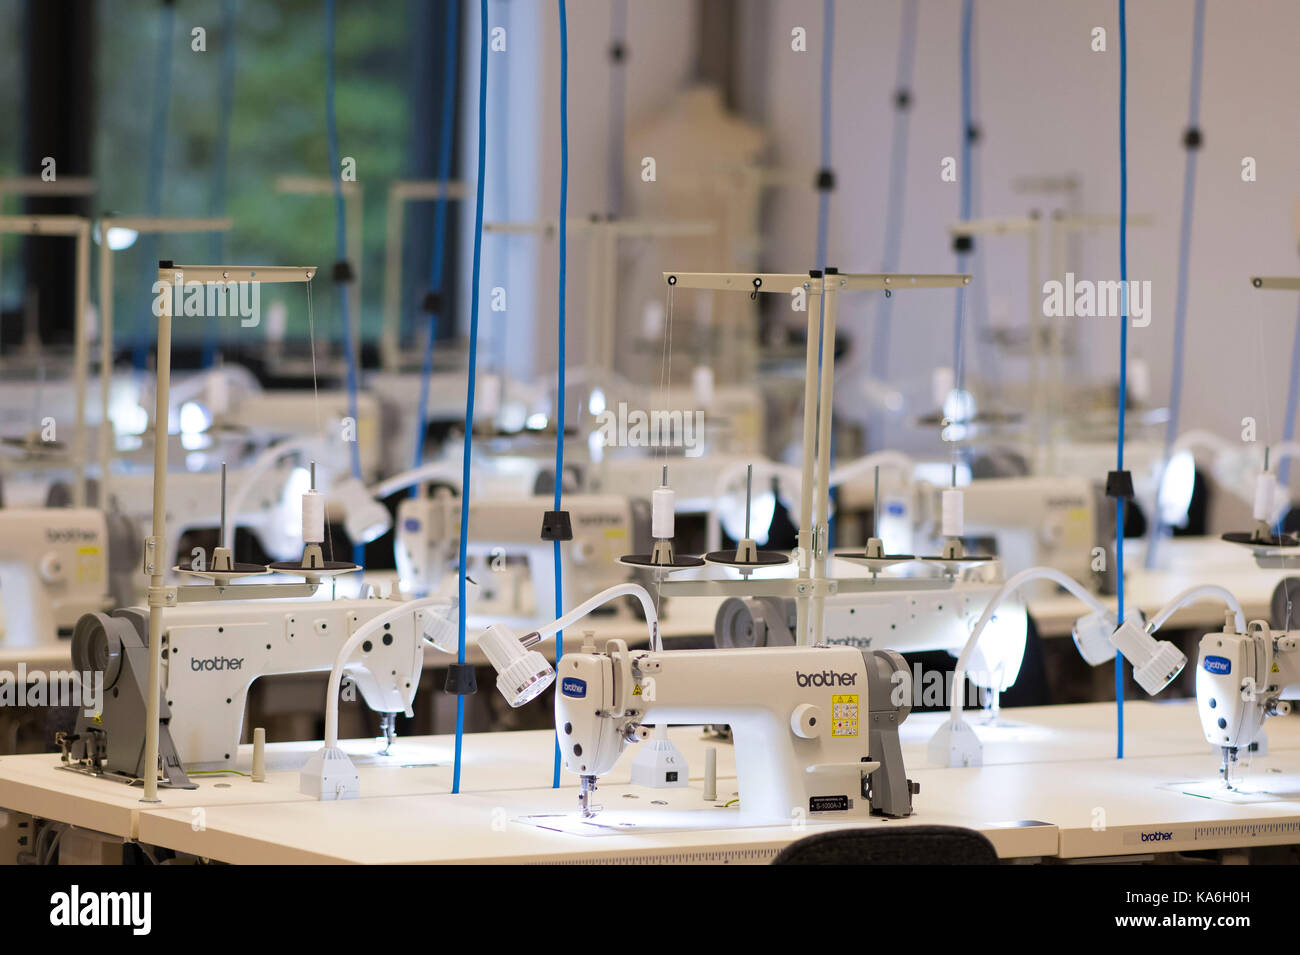 Sewing machines. - Stock Image